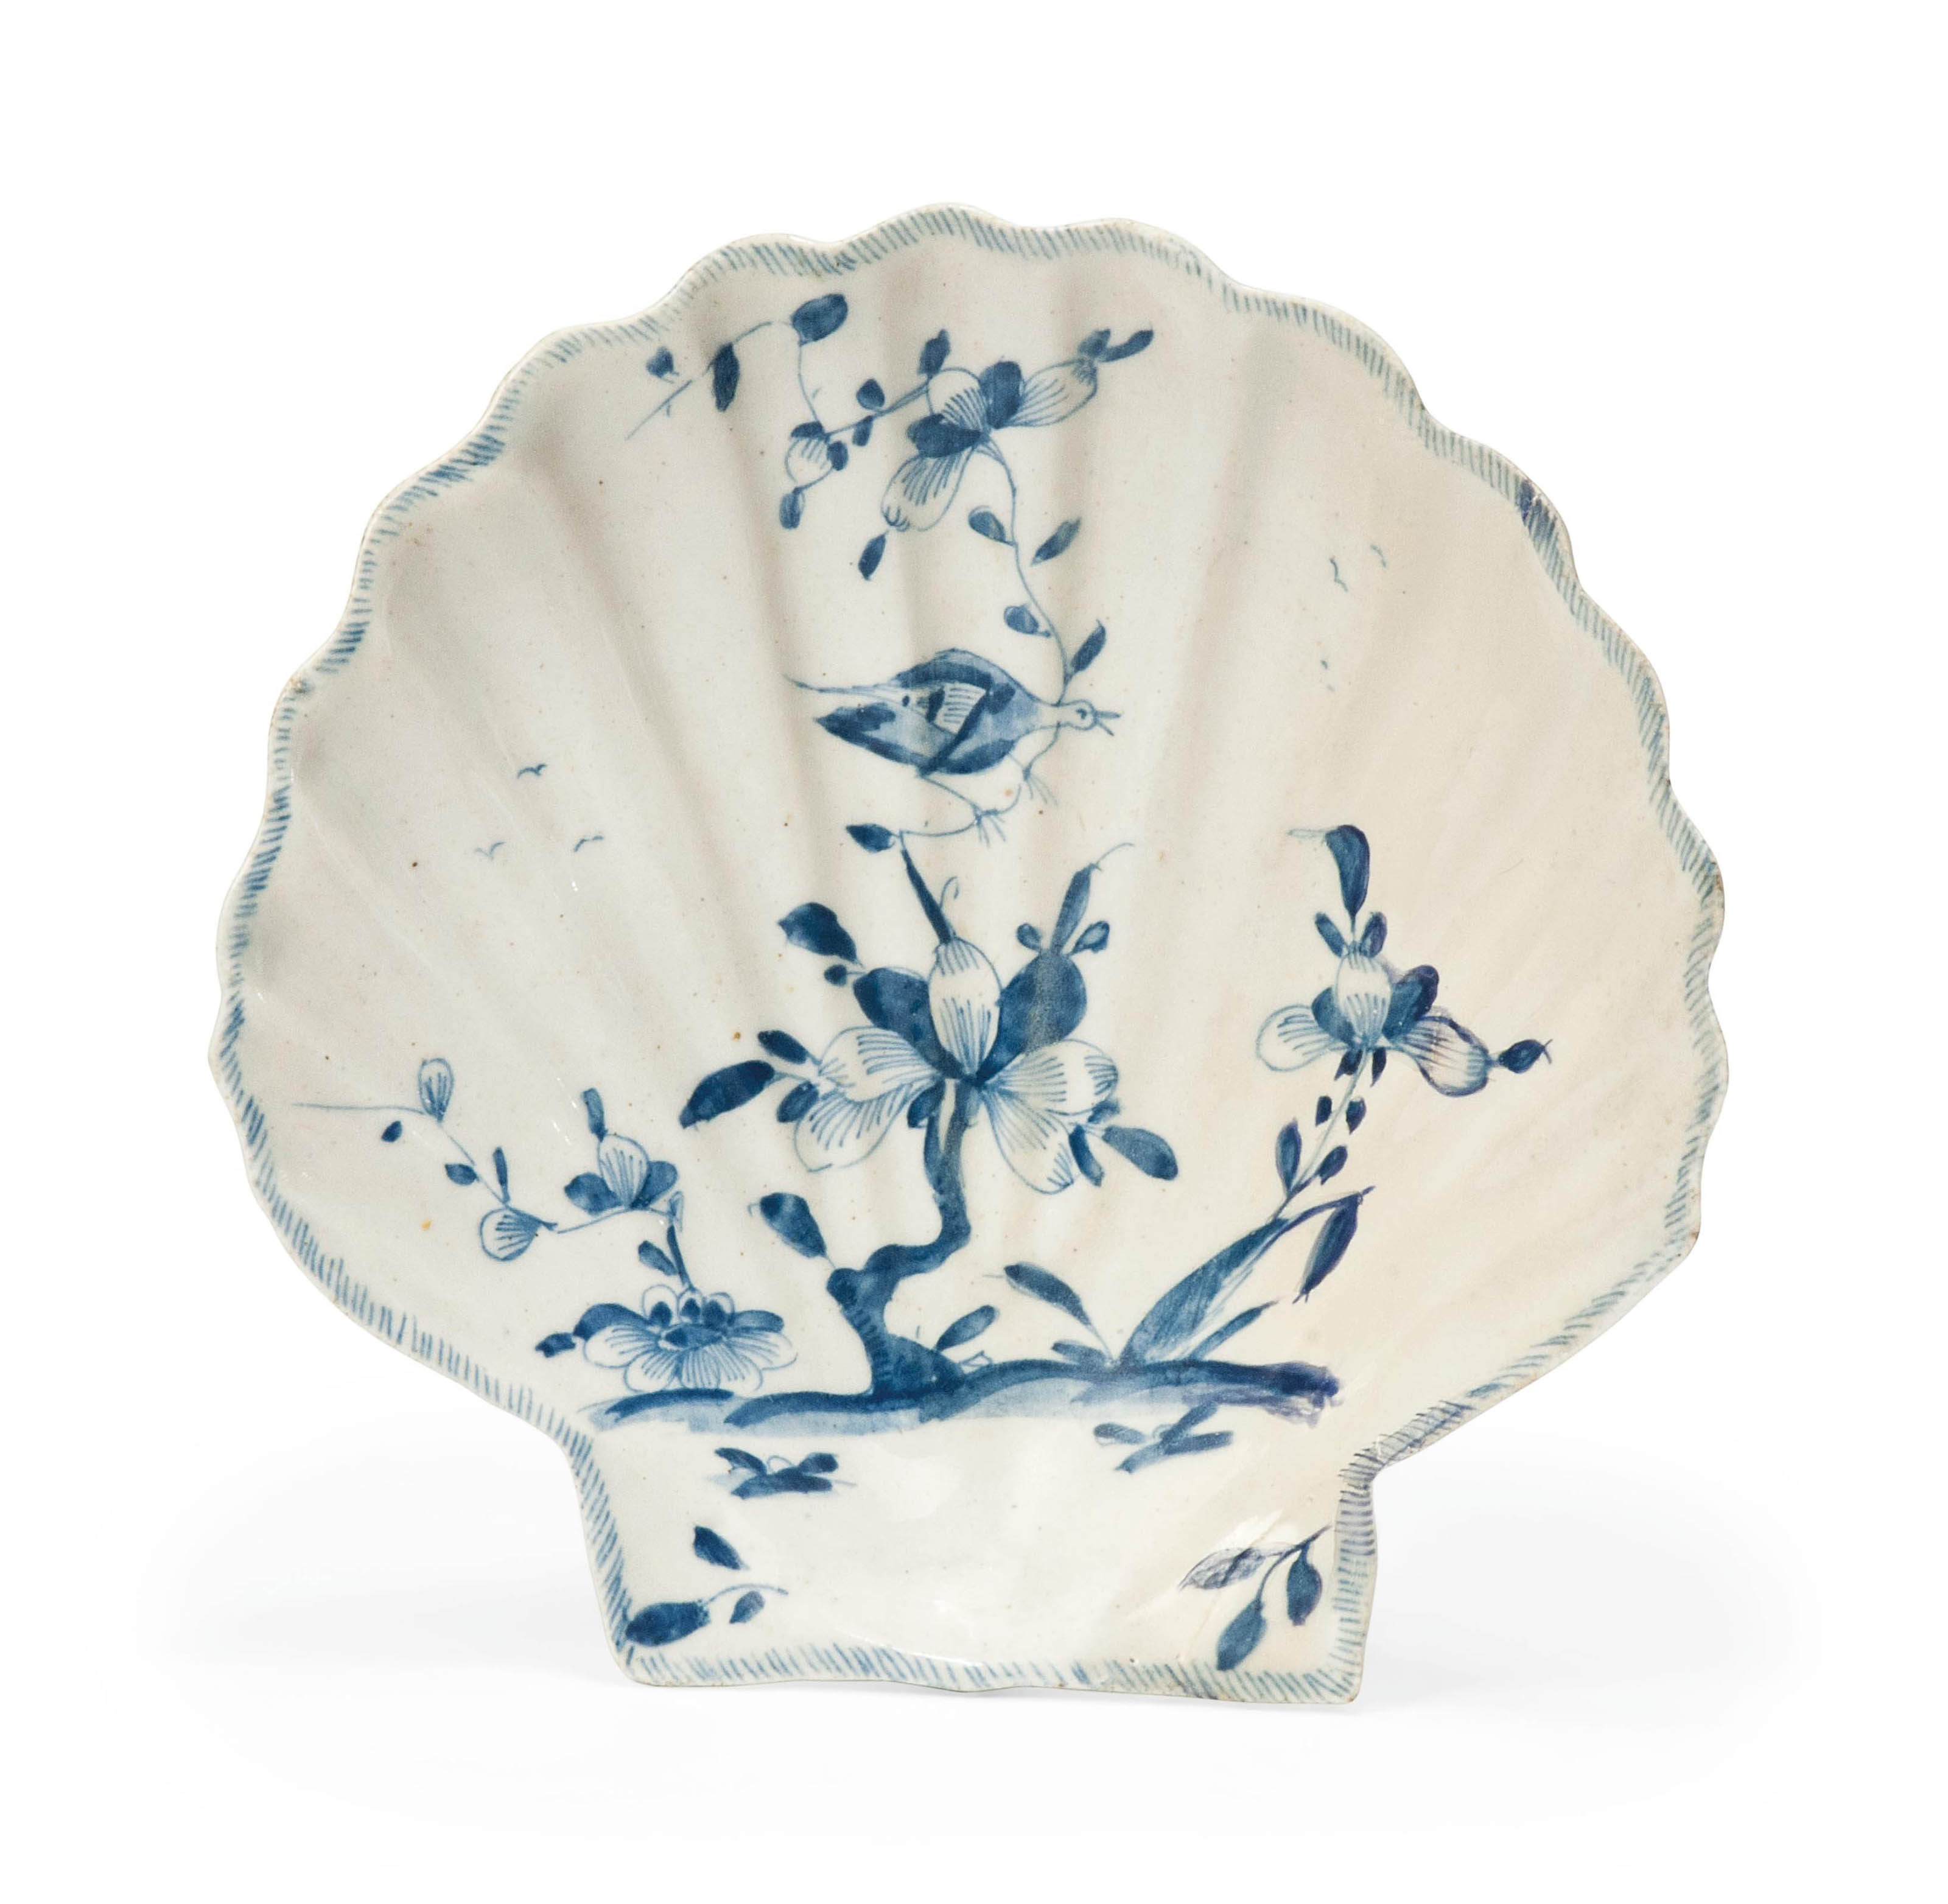 A LOWESTOFT BLUE AND WHITE PECTIN-SHELL DISH